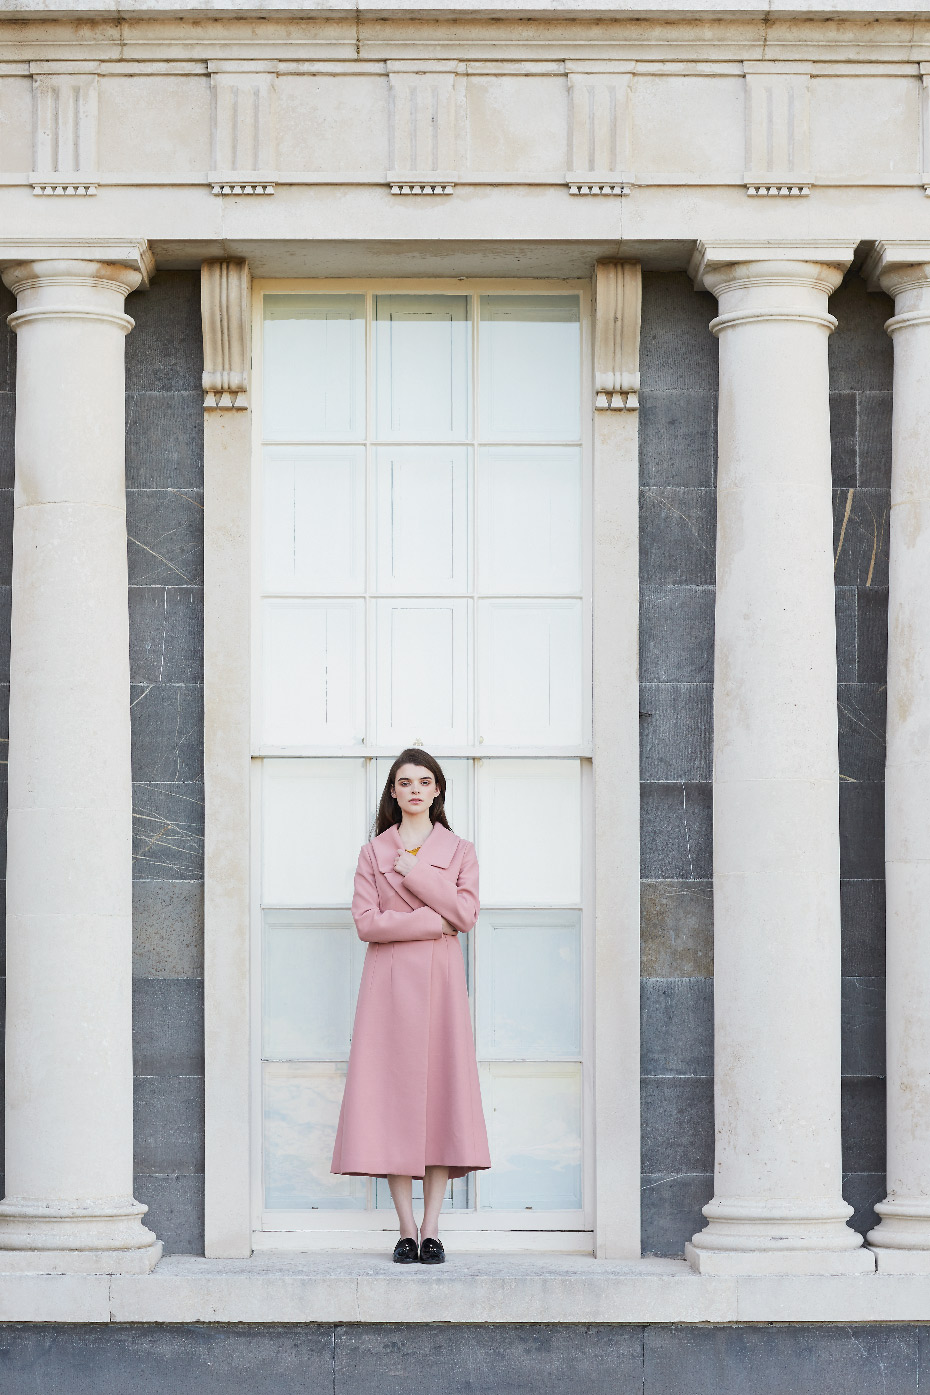 Stacey Van Berkel Photography : Carton House Travel Fashion shoot, Pretty in Pink, Kildare, Ireland